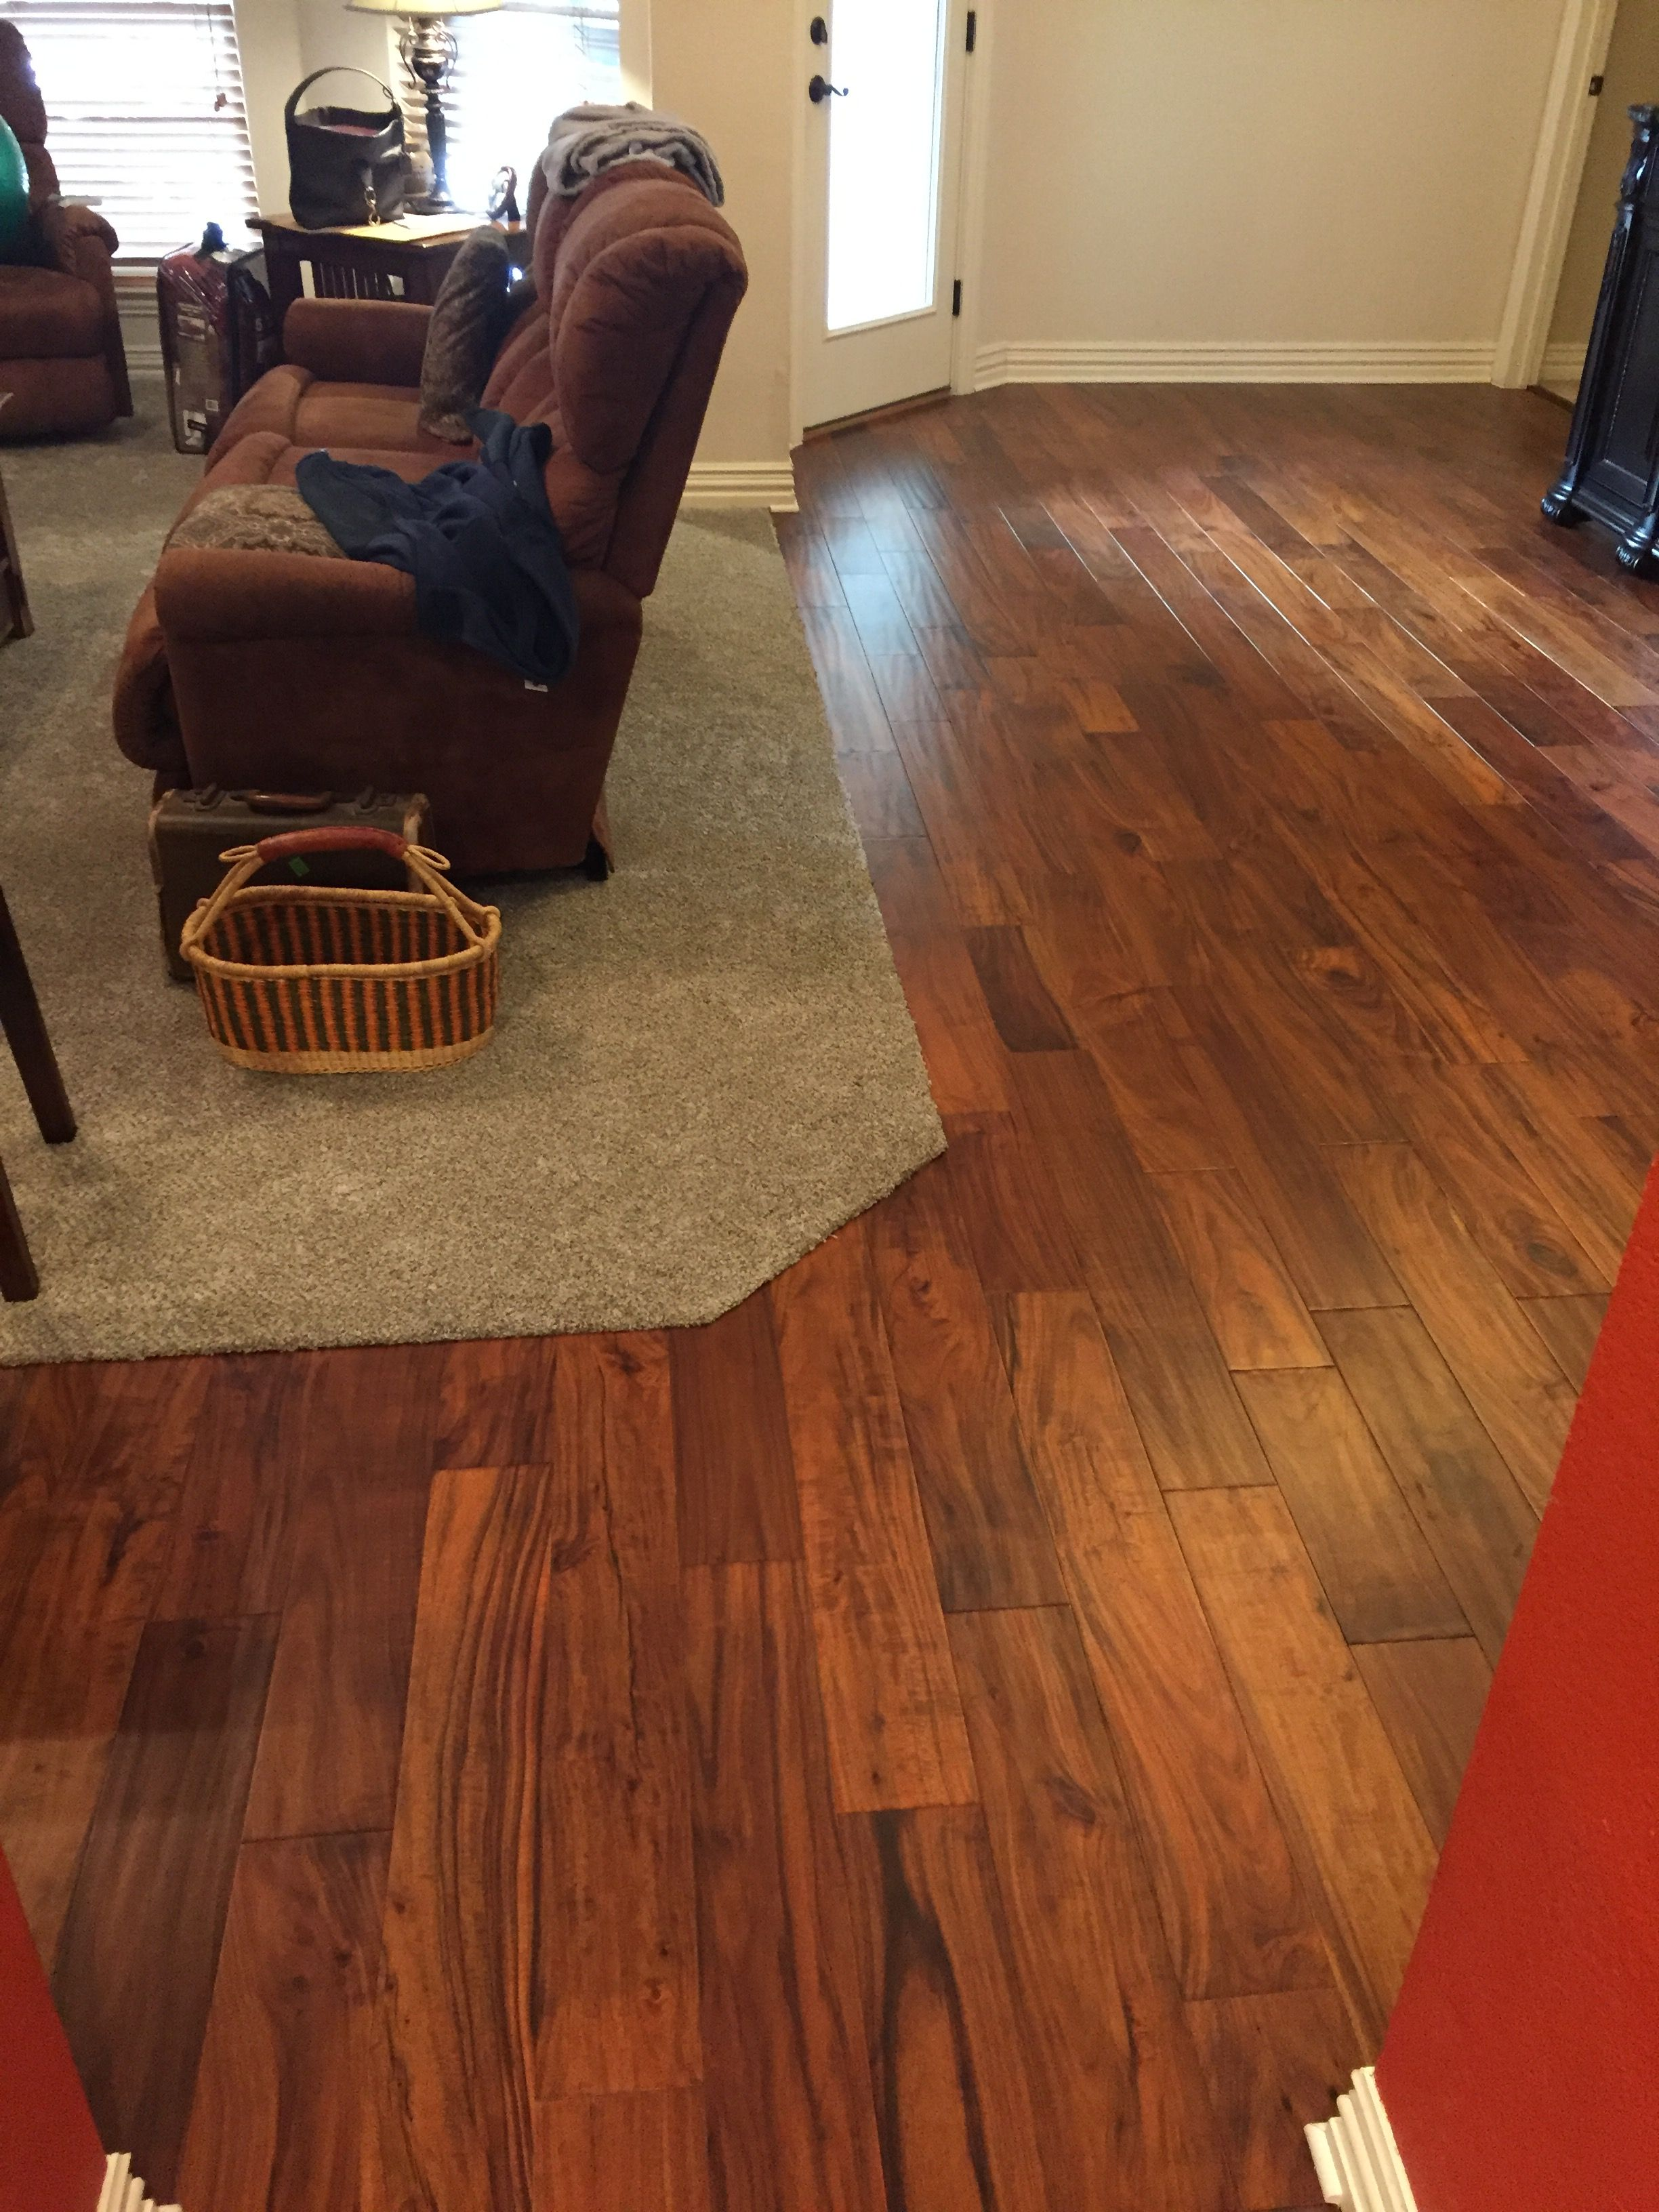 Acacia wood floor with carpet inset wood laminate - Carpet or laminate in living room ...